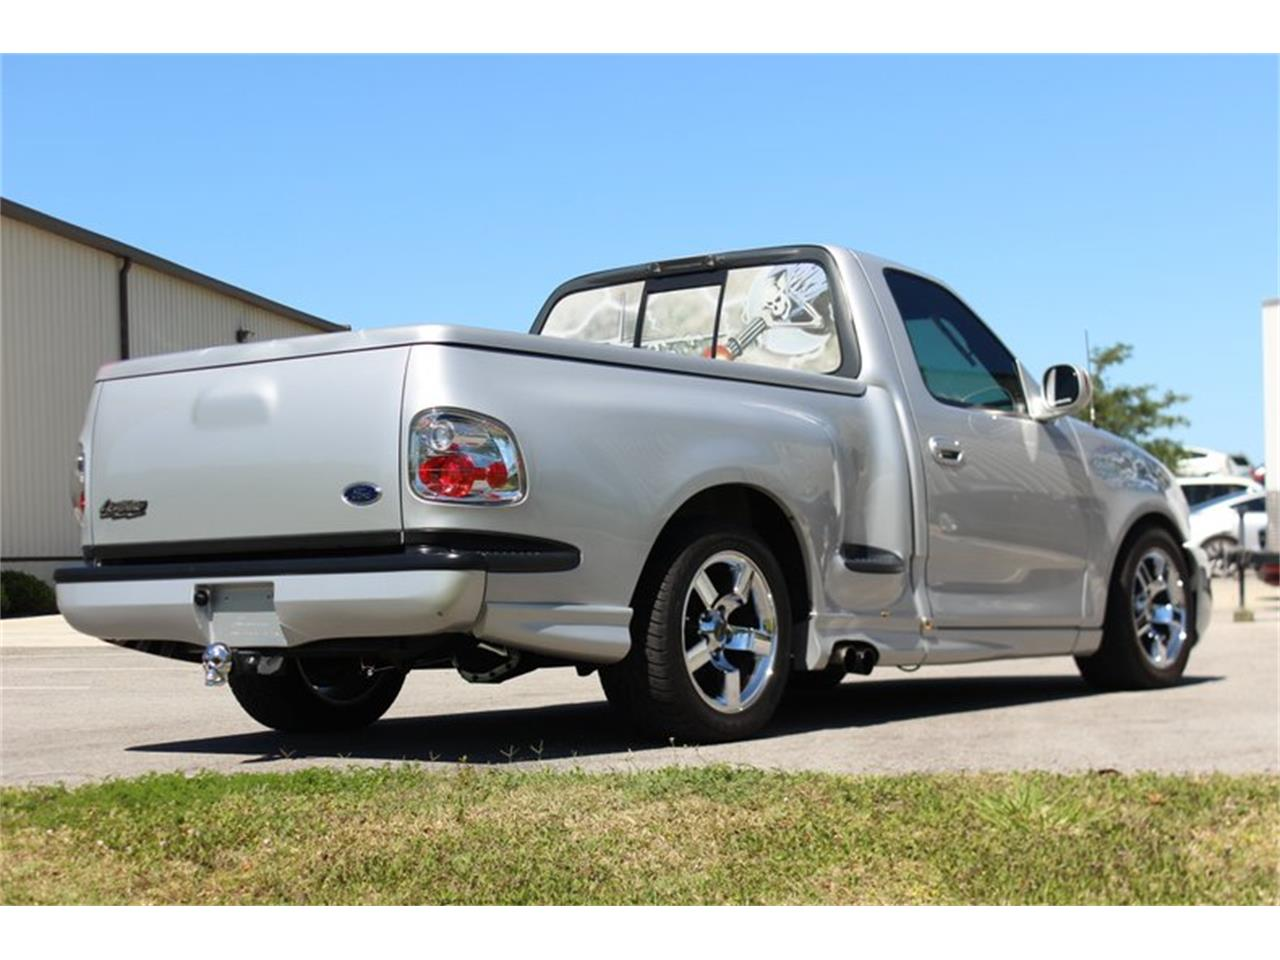 2002 Ford Lightning for sale in Palmetto, FL – photo 44